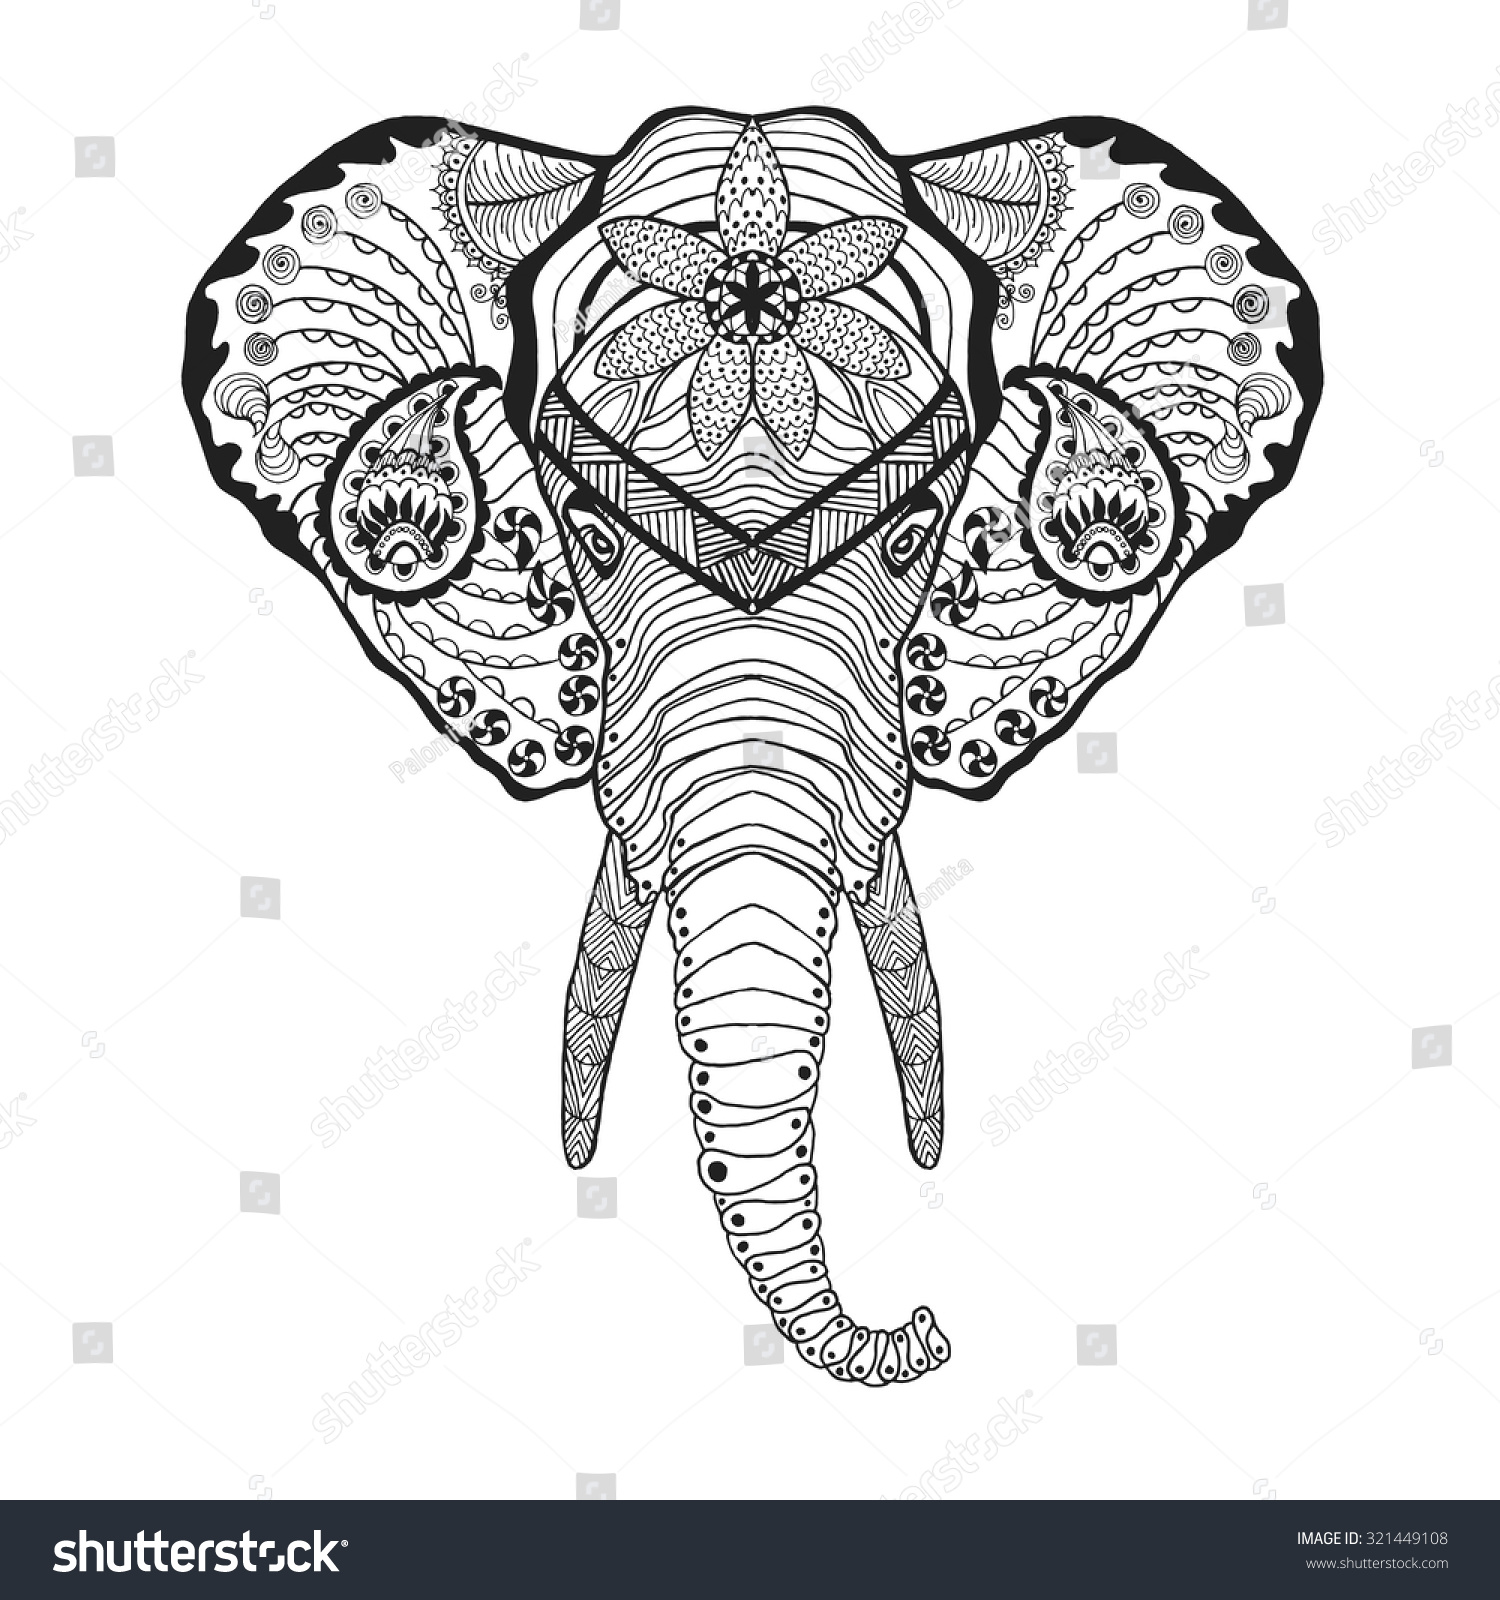 elephant head adult antistress coloring page black white hand drawn doodle animal ethnic - Coloring Page Elephant Design